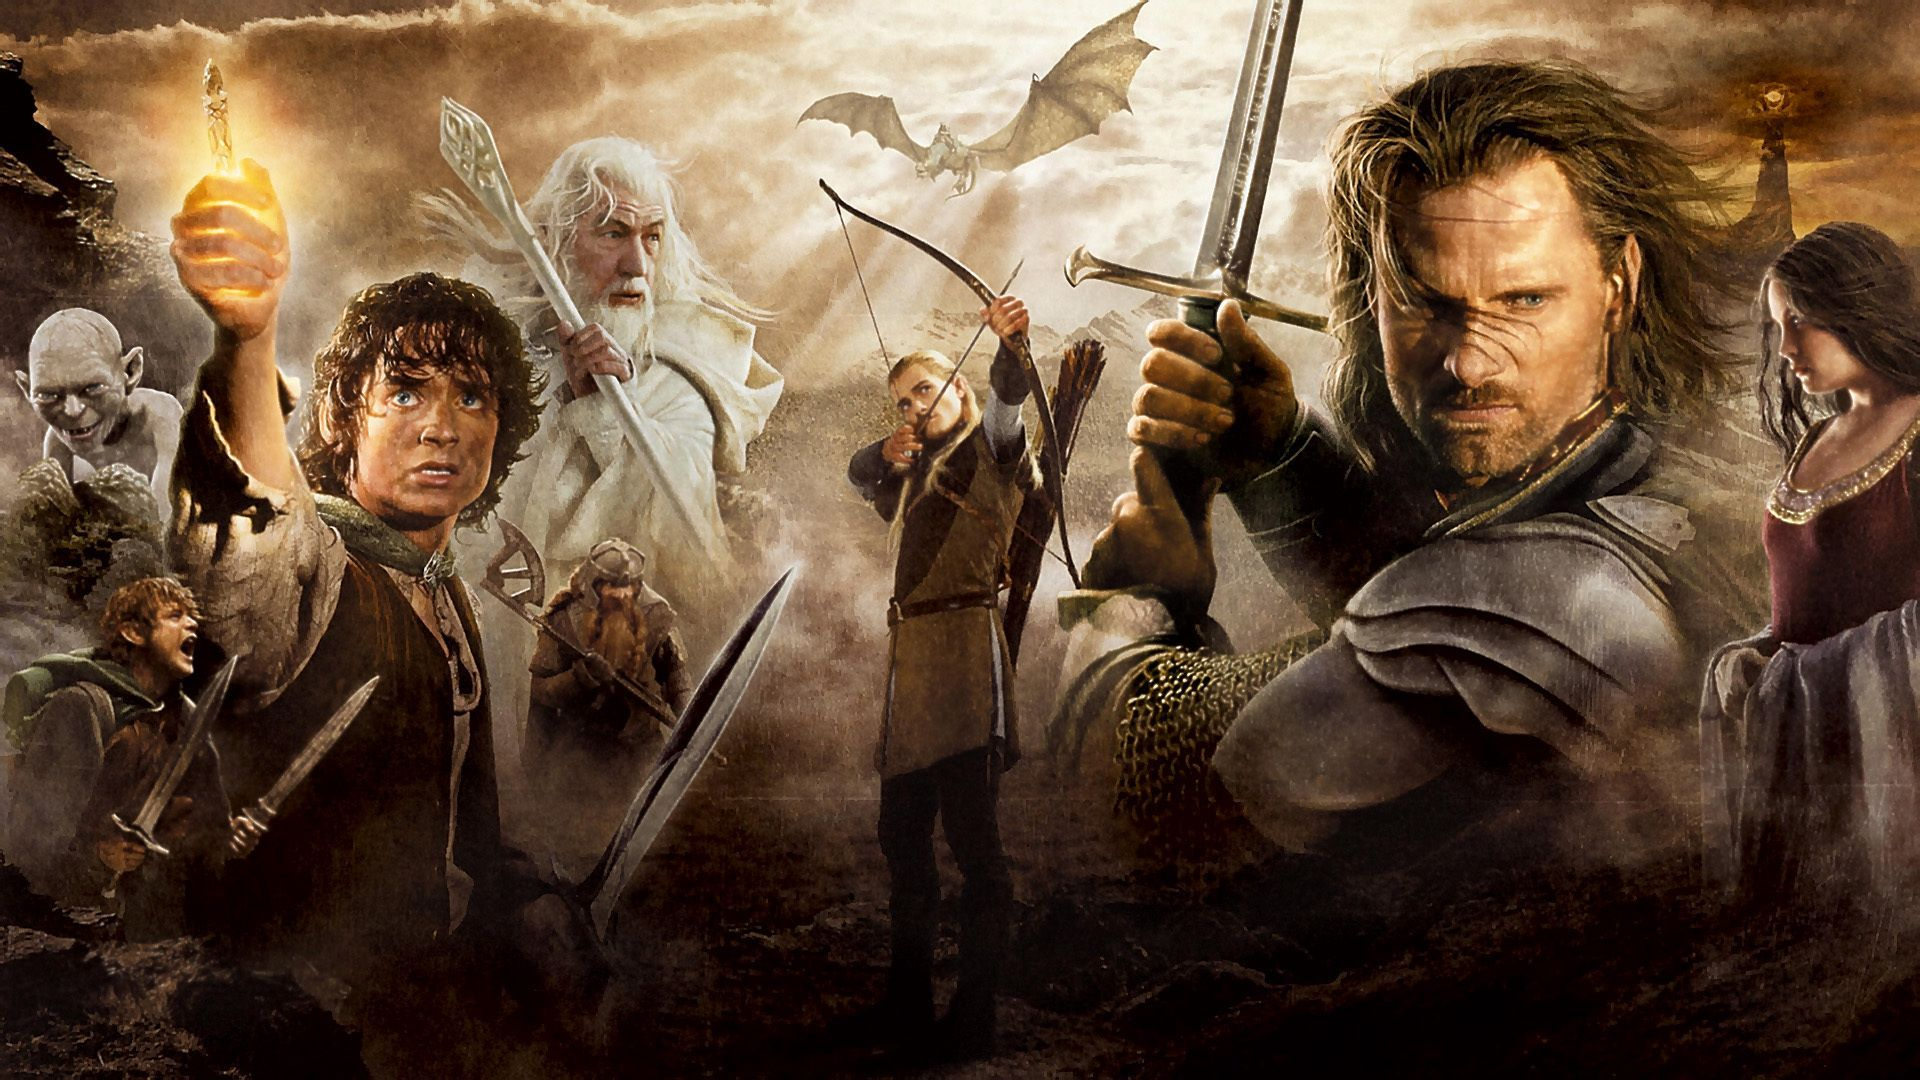 the lord of the rings görseli